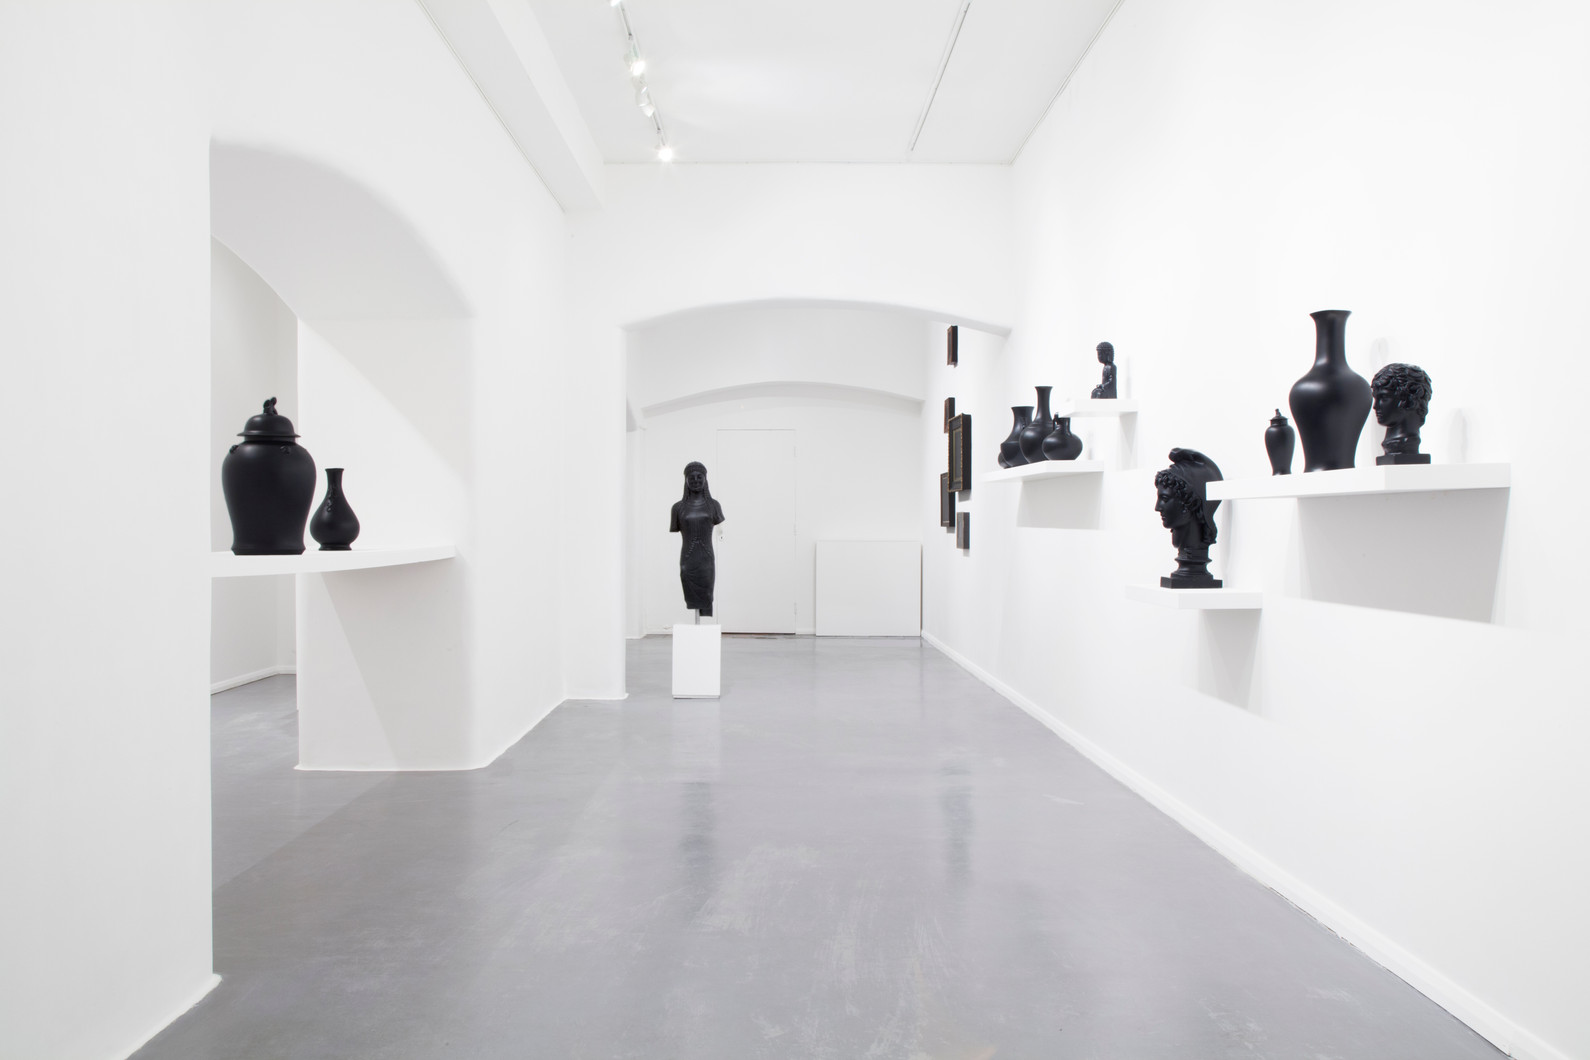 Installation view, Architype: Meeyoung Shin, Sumarria Lunn Gallery